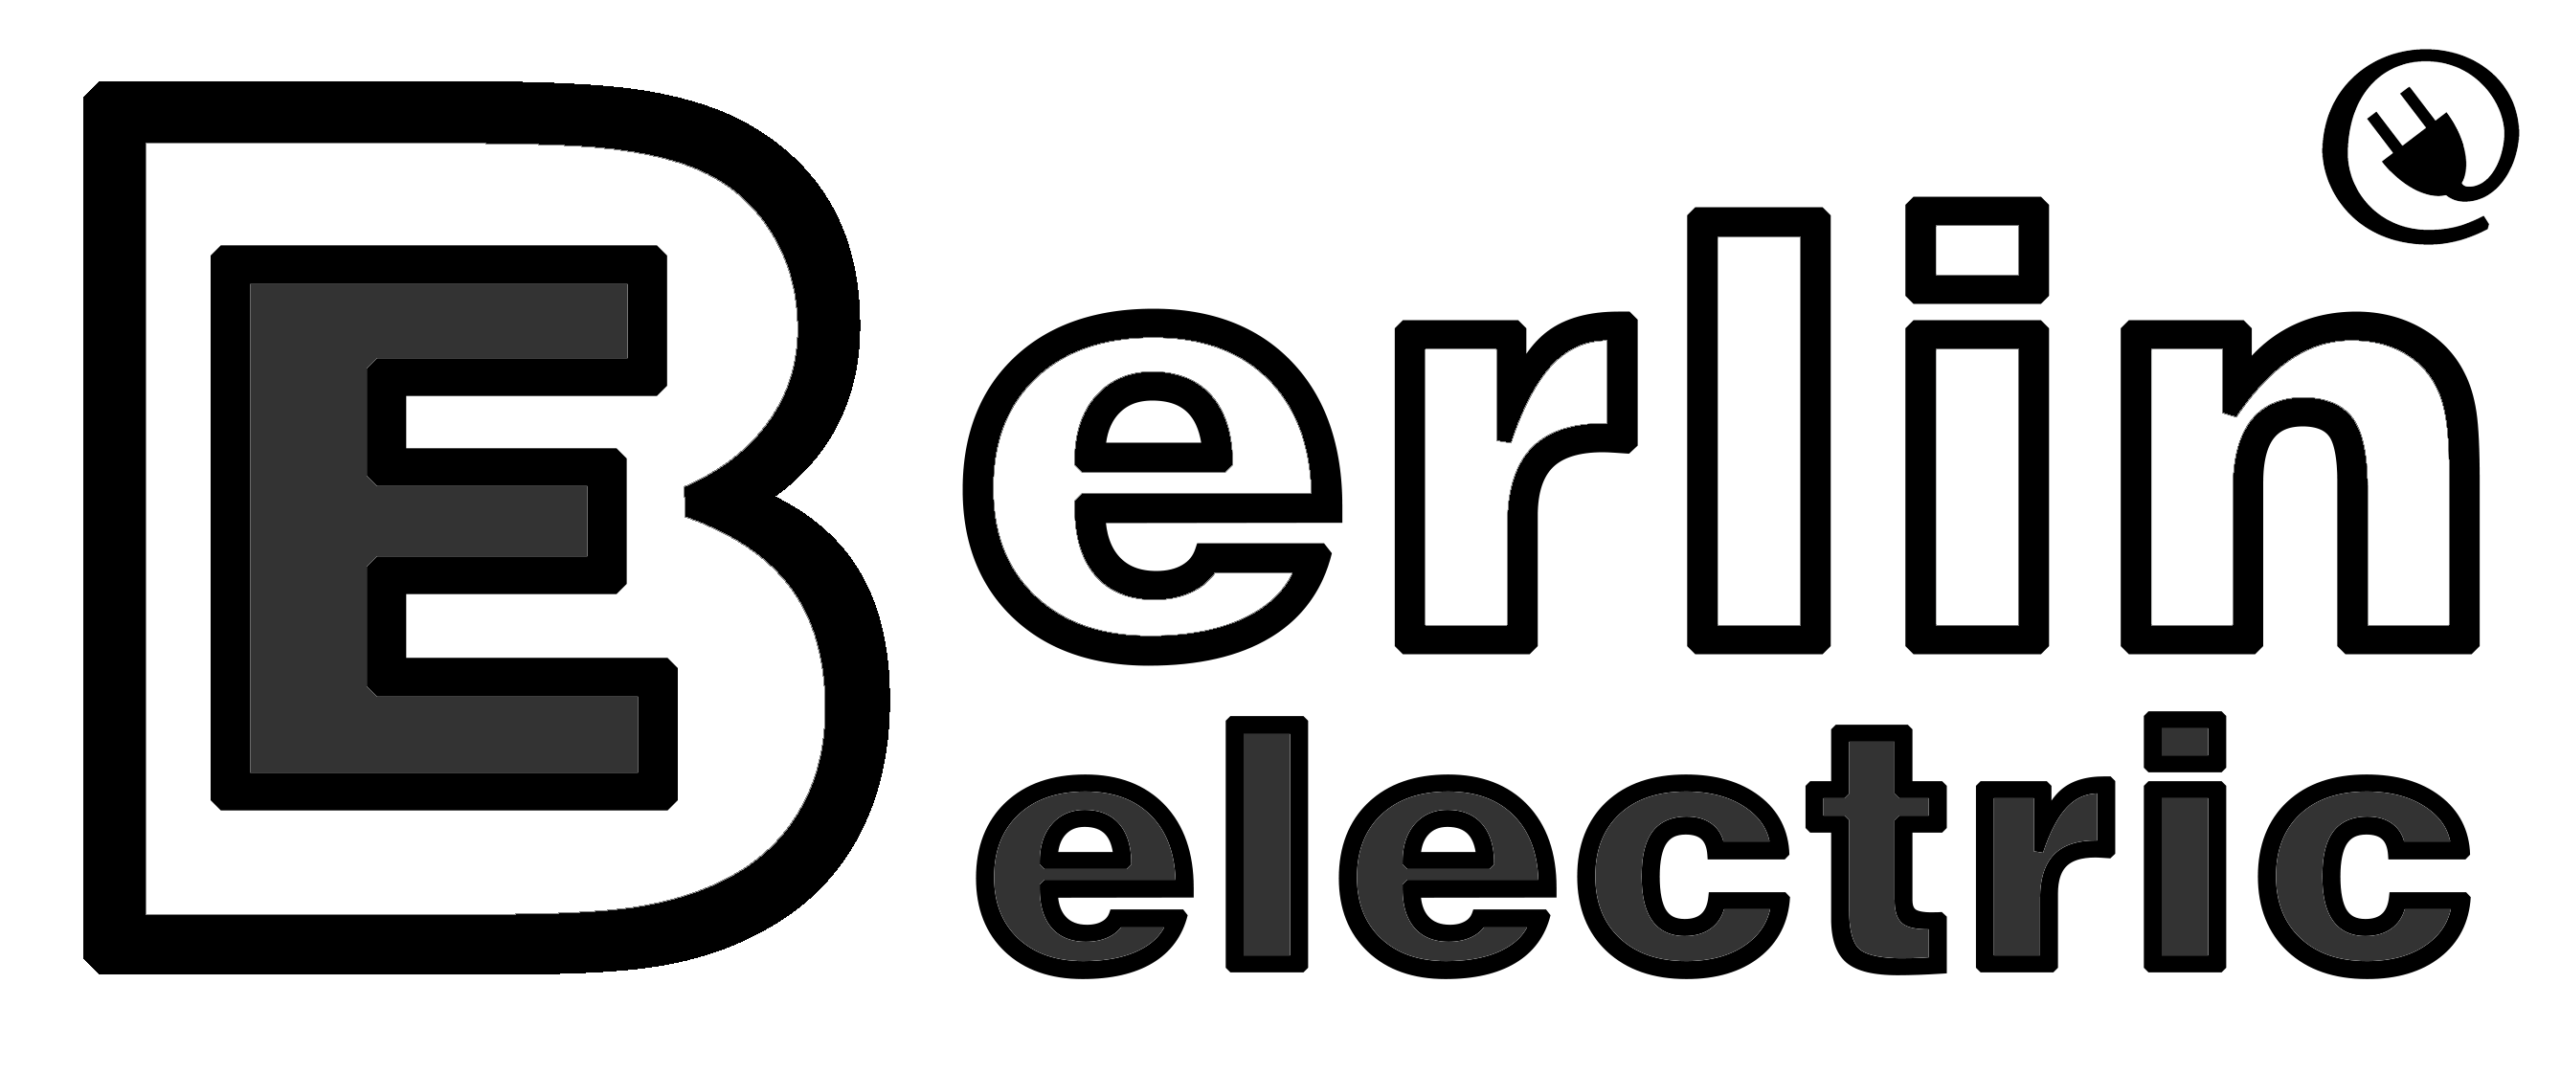 Berlin Electric